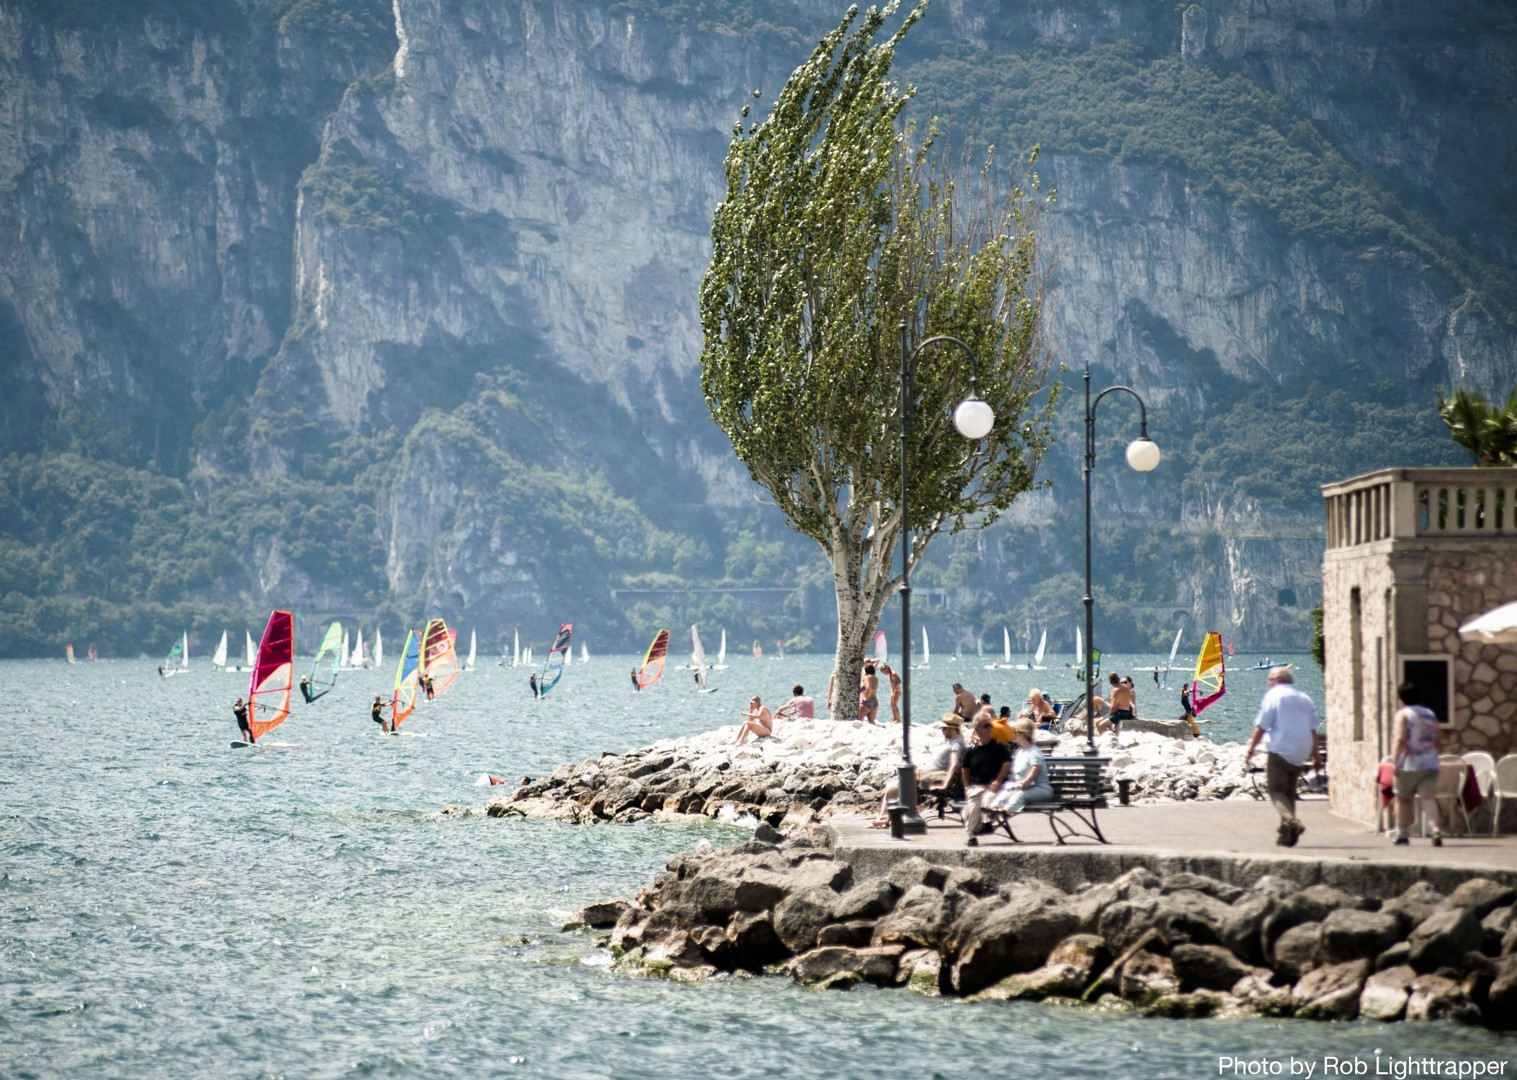 Water-Sports-for-kids-on-lake-garda-Family-Cycling-Holiday-Lake-Garda-Venice-Italy.jpg - Italy - Lake Garda to Venice - Self-Guided Family Cycling Holiday - Family Cycling